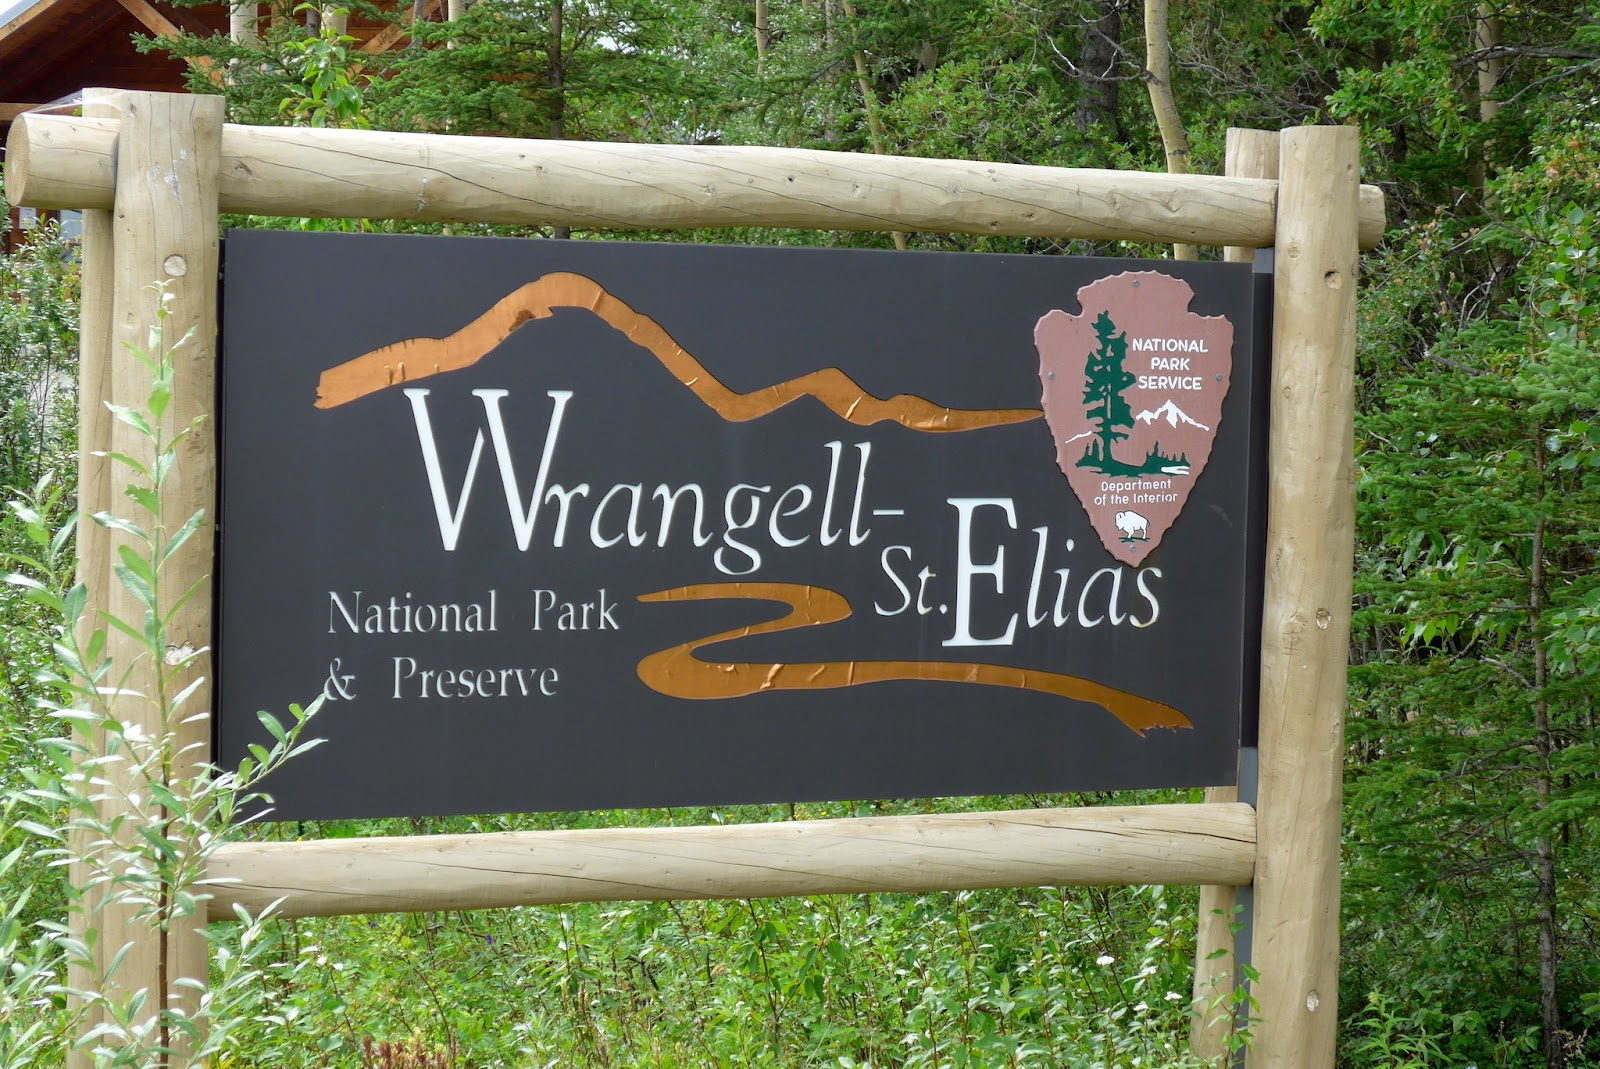 Sign of Wrangell - St. Elias National Park Preserve